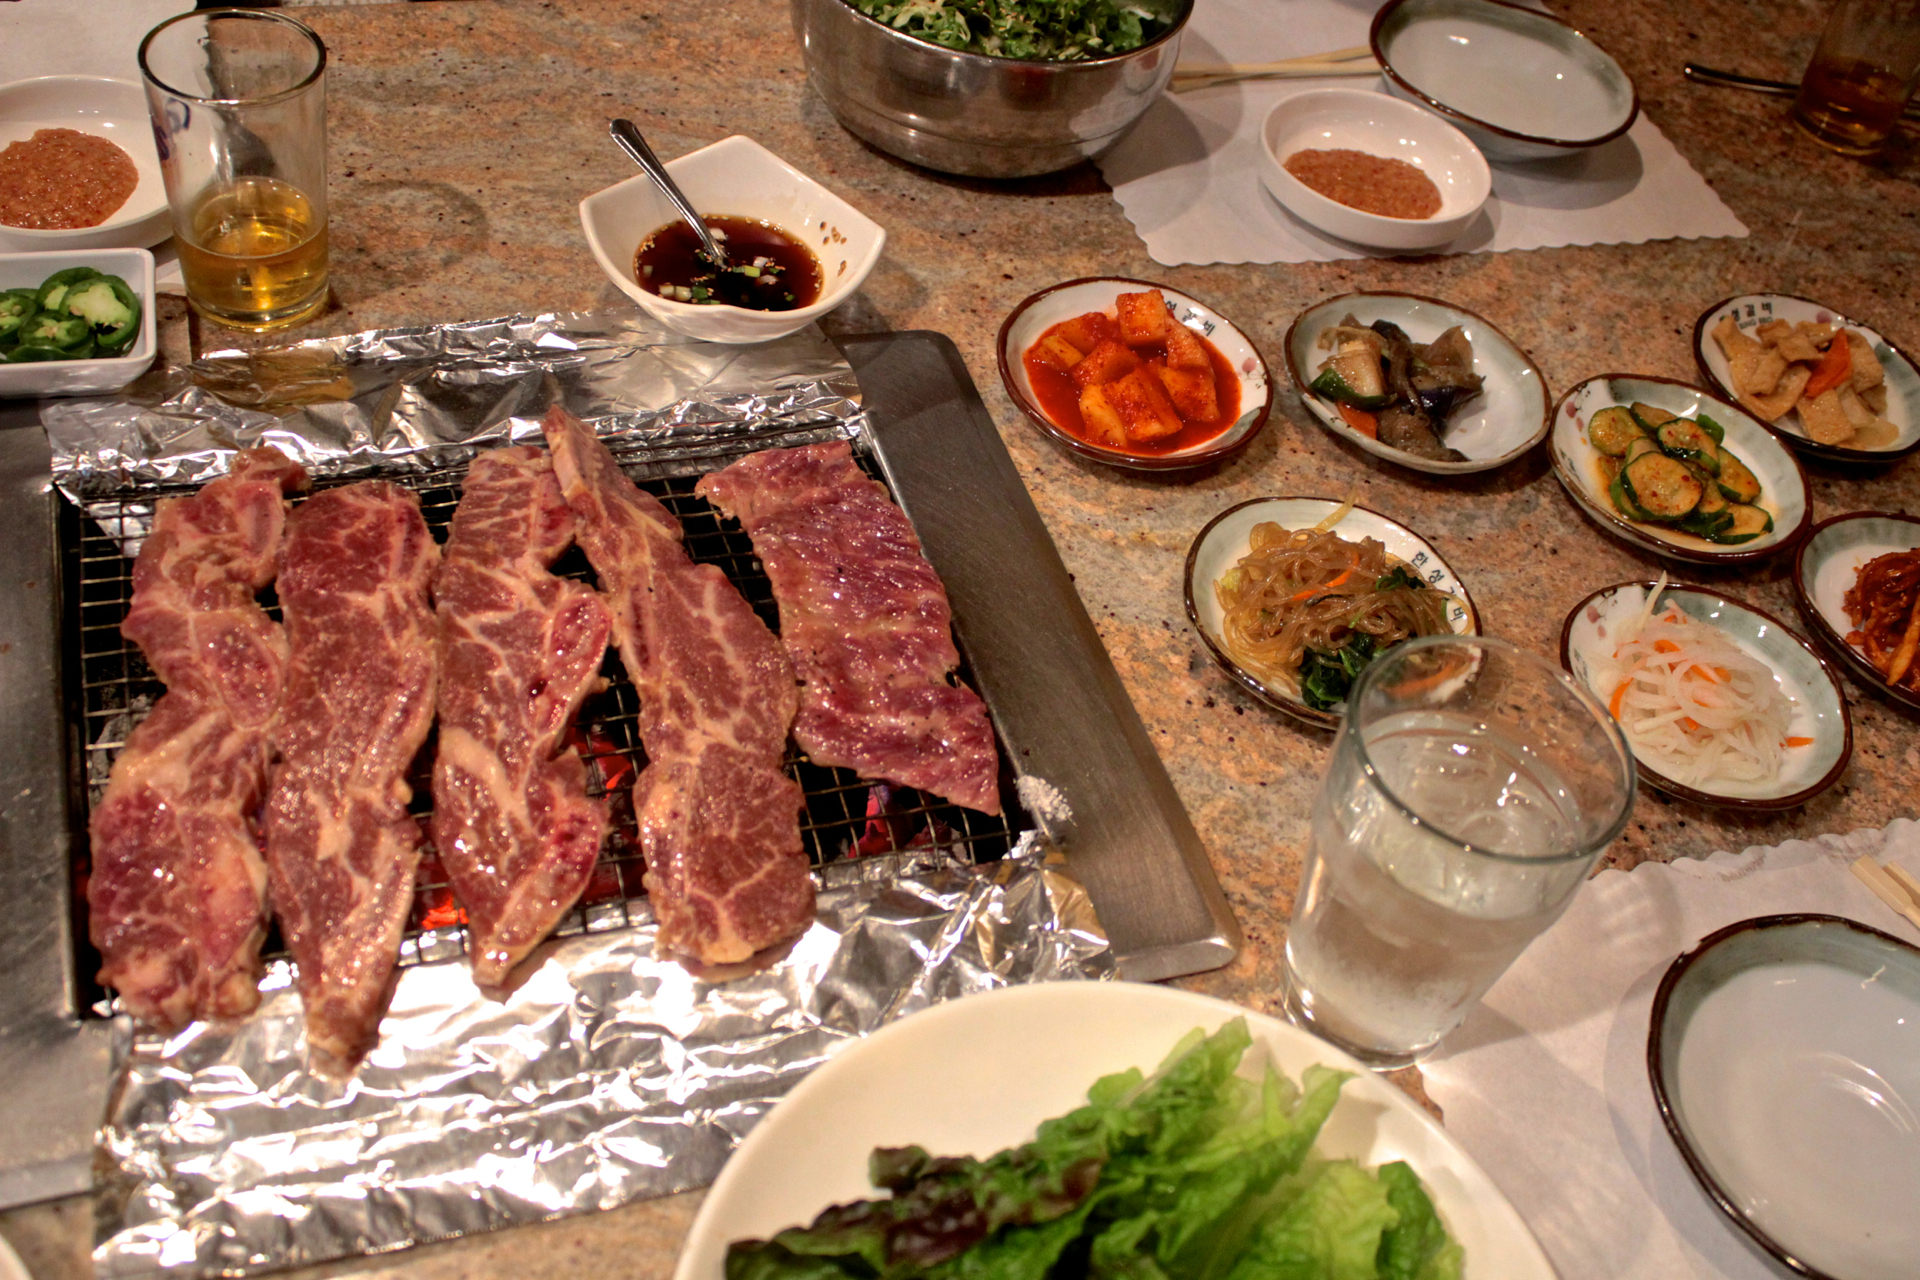 Short ribs cooking on the charcoal grill at Han Sung.